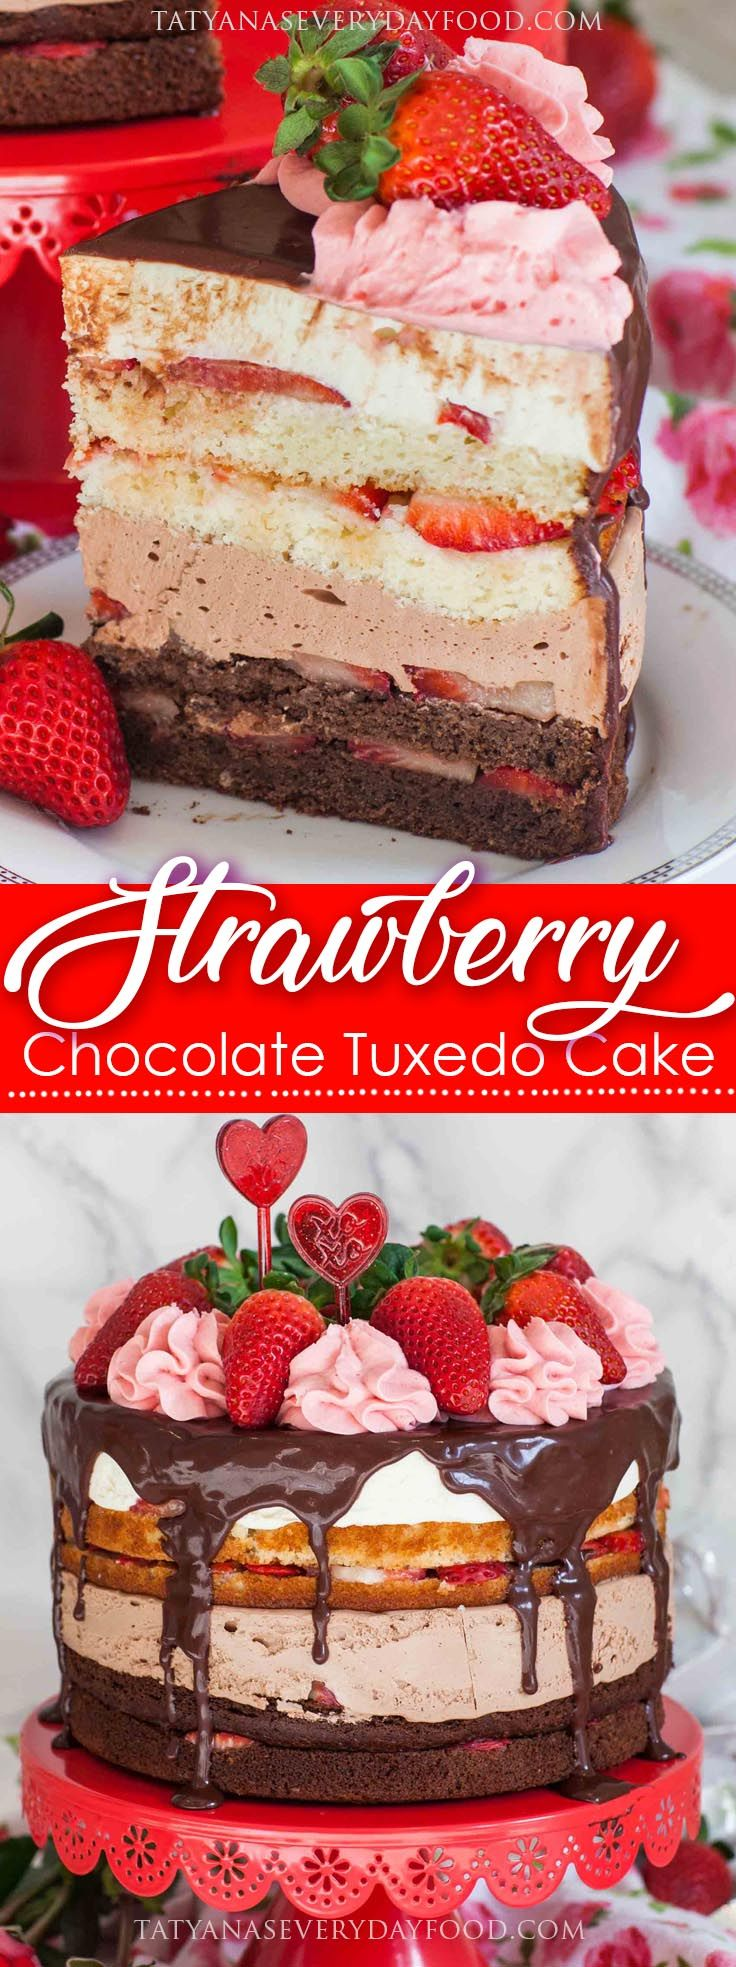 Hello, February! It's time for some Valentine's Day desserts and I have you covered with some new and exciting recipes. This strawberry tuxedo cake is a fun and fruity take on my original tuxedo cake and I think you'll love it! It's made with tender cake layers, no-bake cheesecake layers and loads of strawberries. And […]